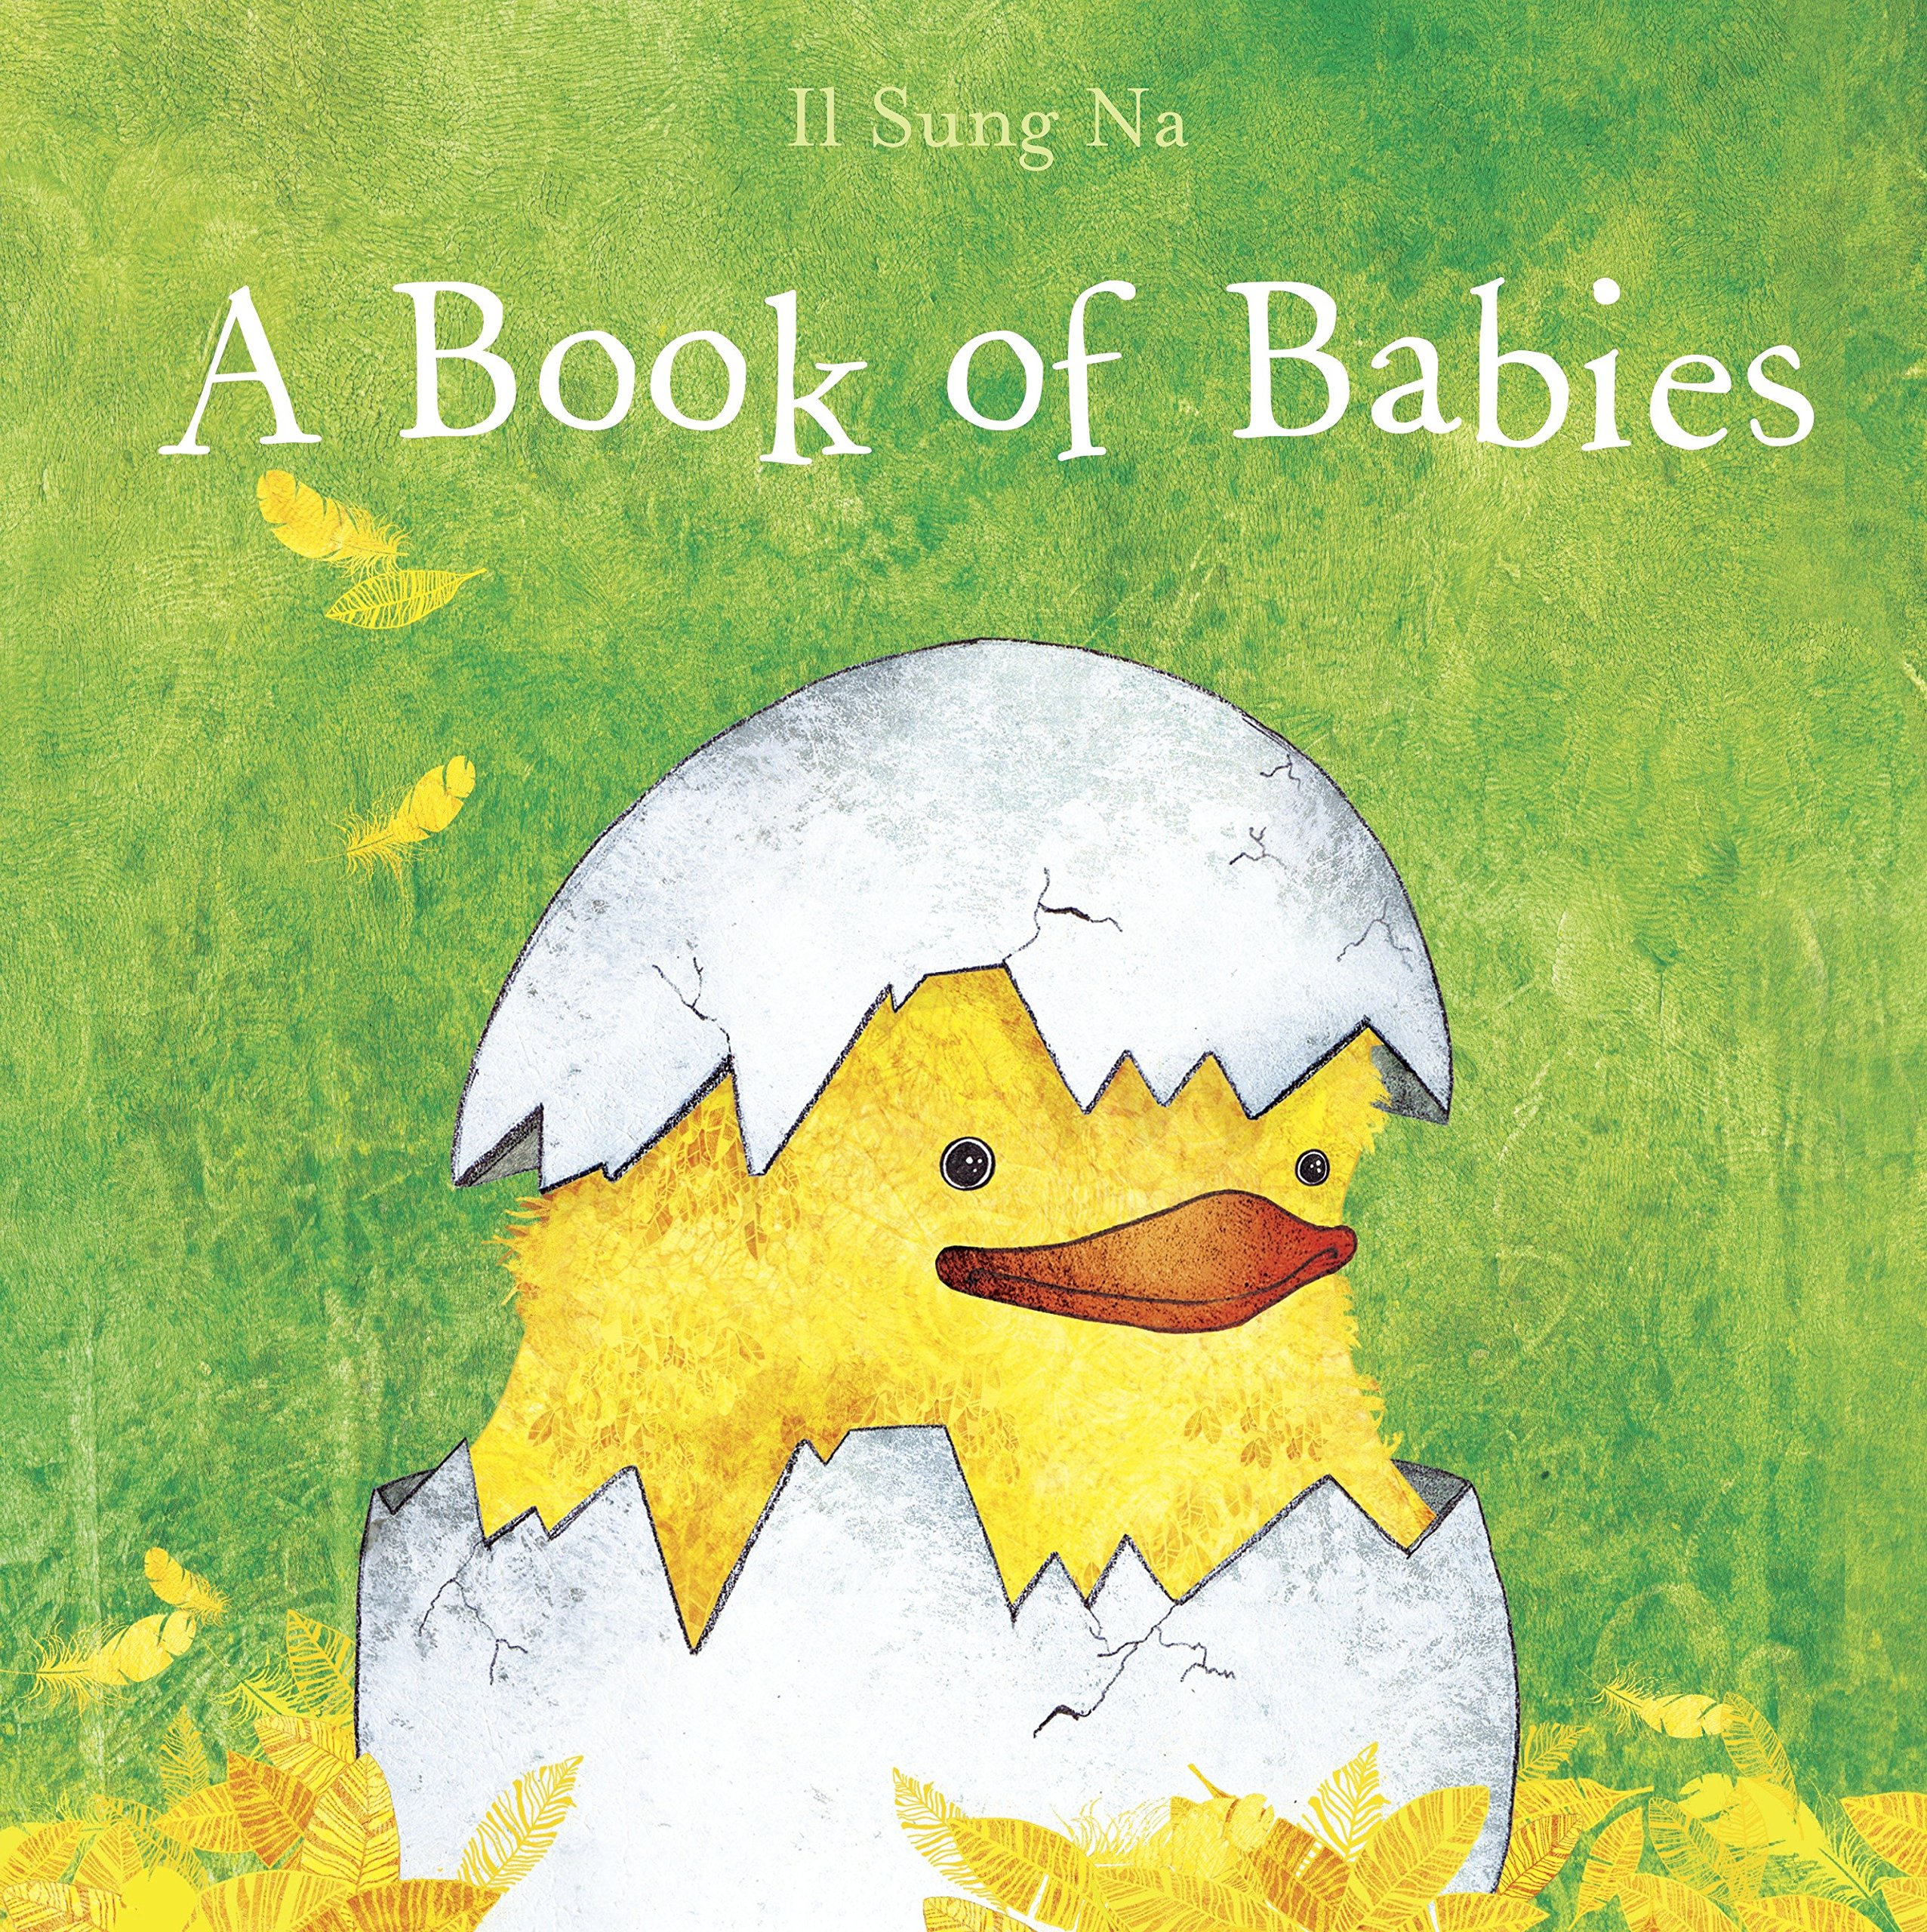 20+ Best Books for 2 Year Olds Parents Should Consider 11